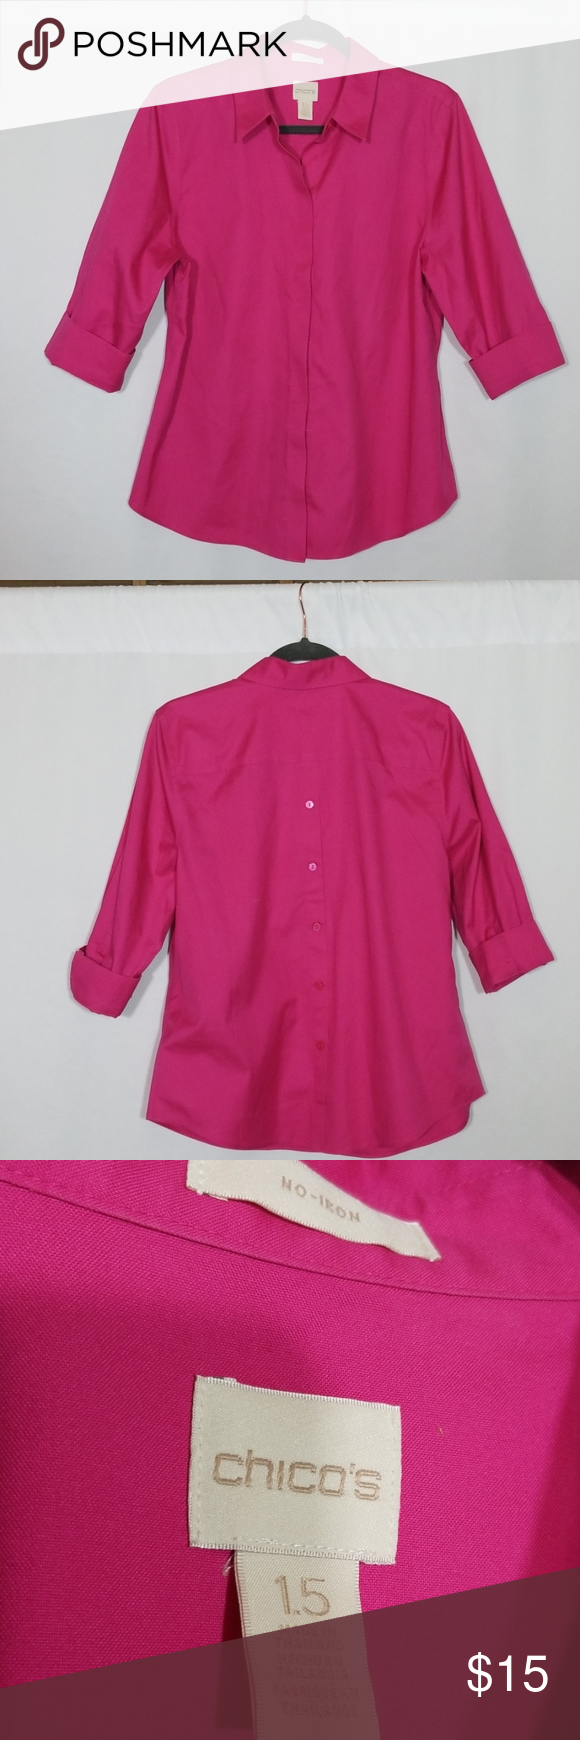 Chico's Button Down Top Size 1.5 Beautiful button down top with buttons in back for looks. #0509 Chico's Tops Button Down Shirts